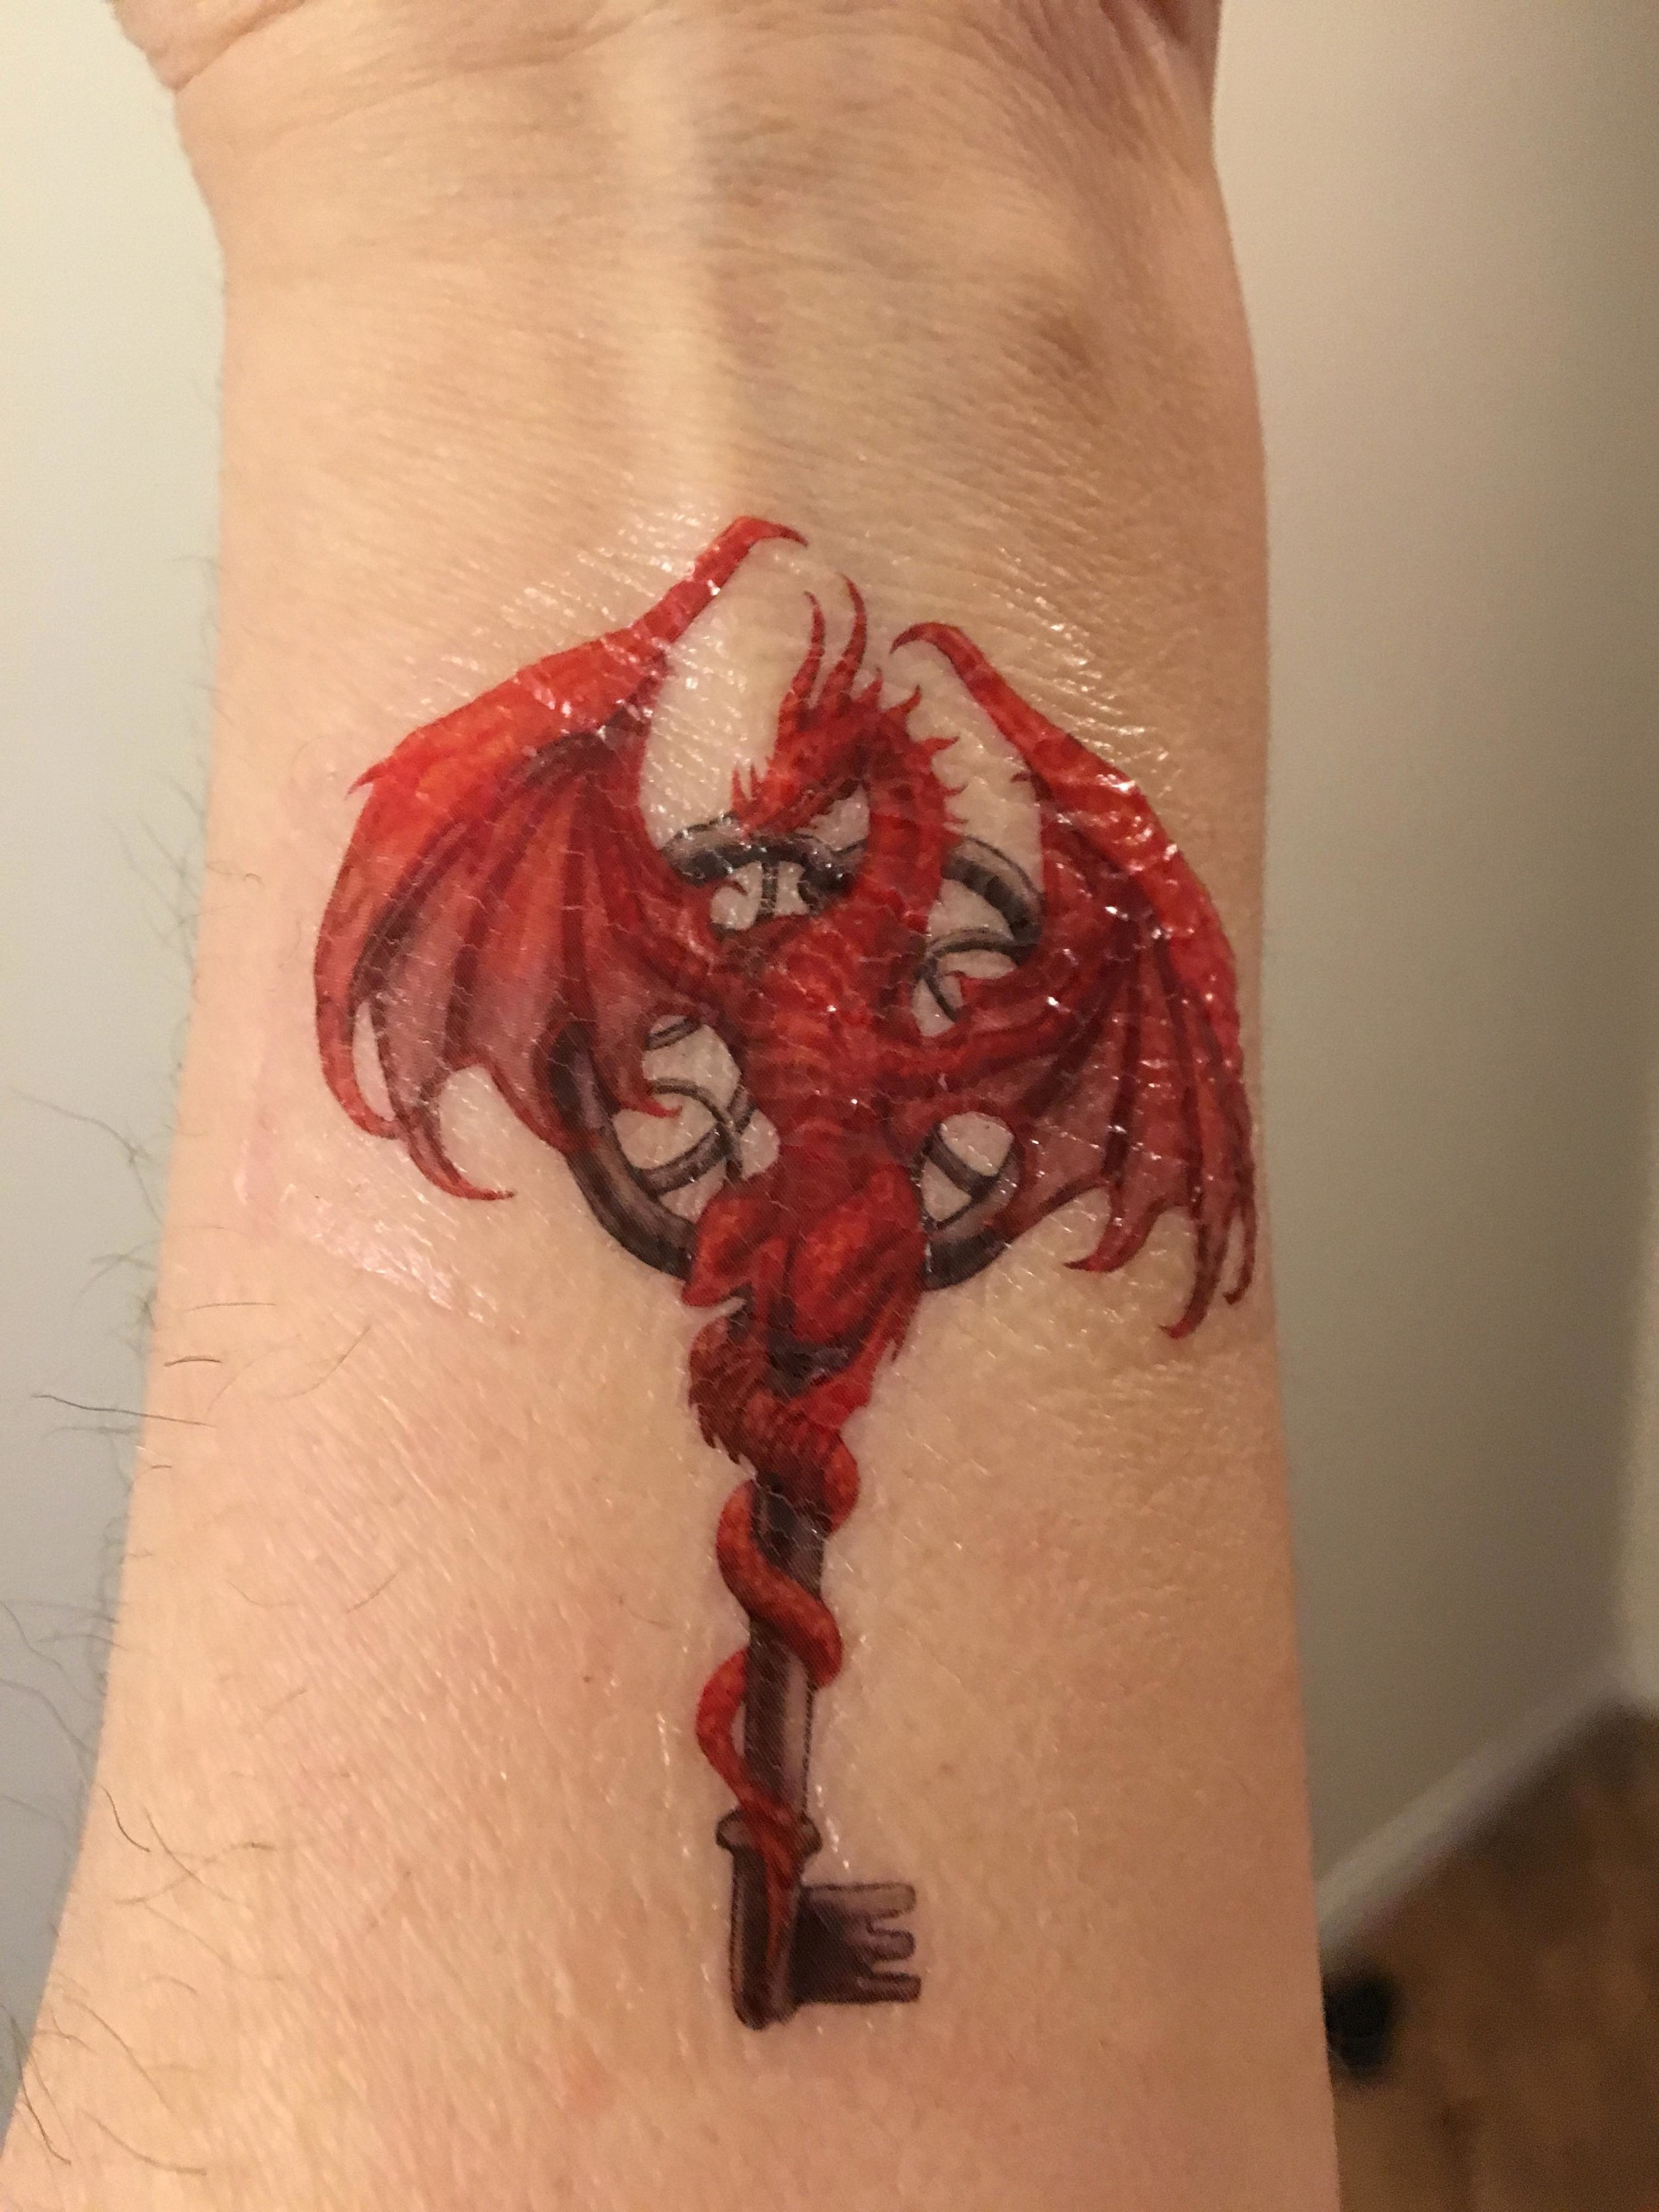 Wyvern-Key Tattoo1.jpg